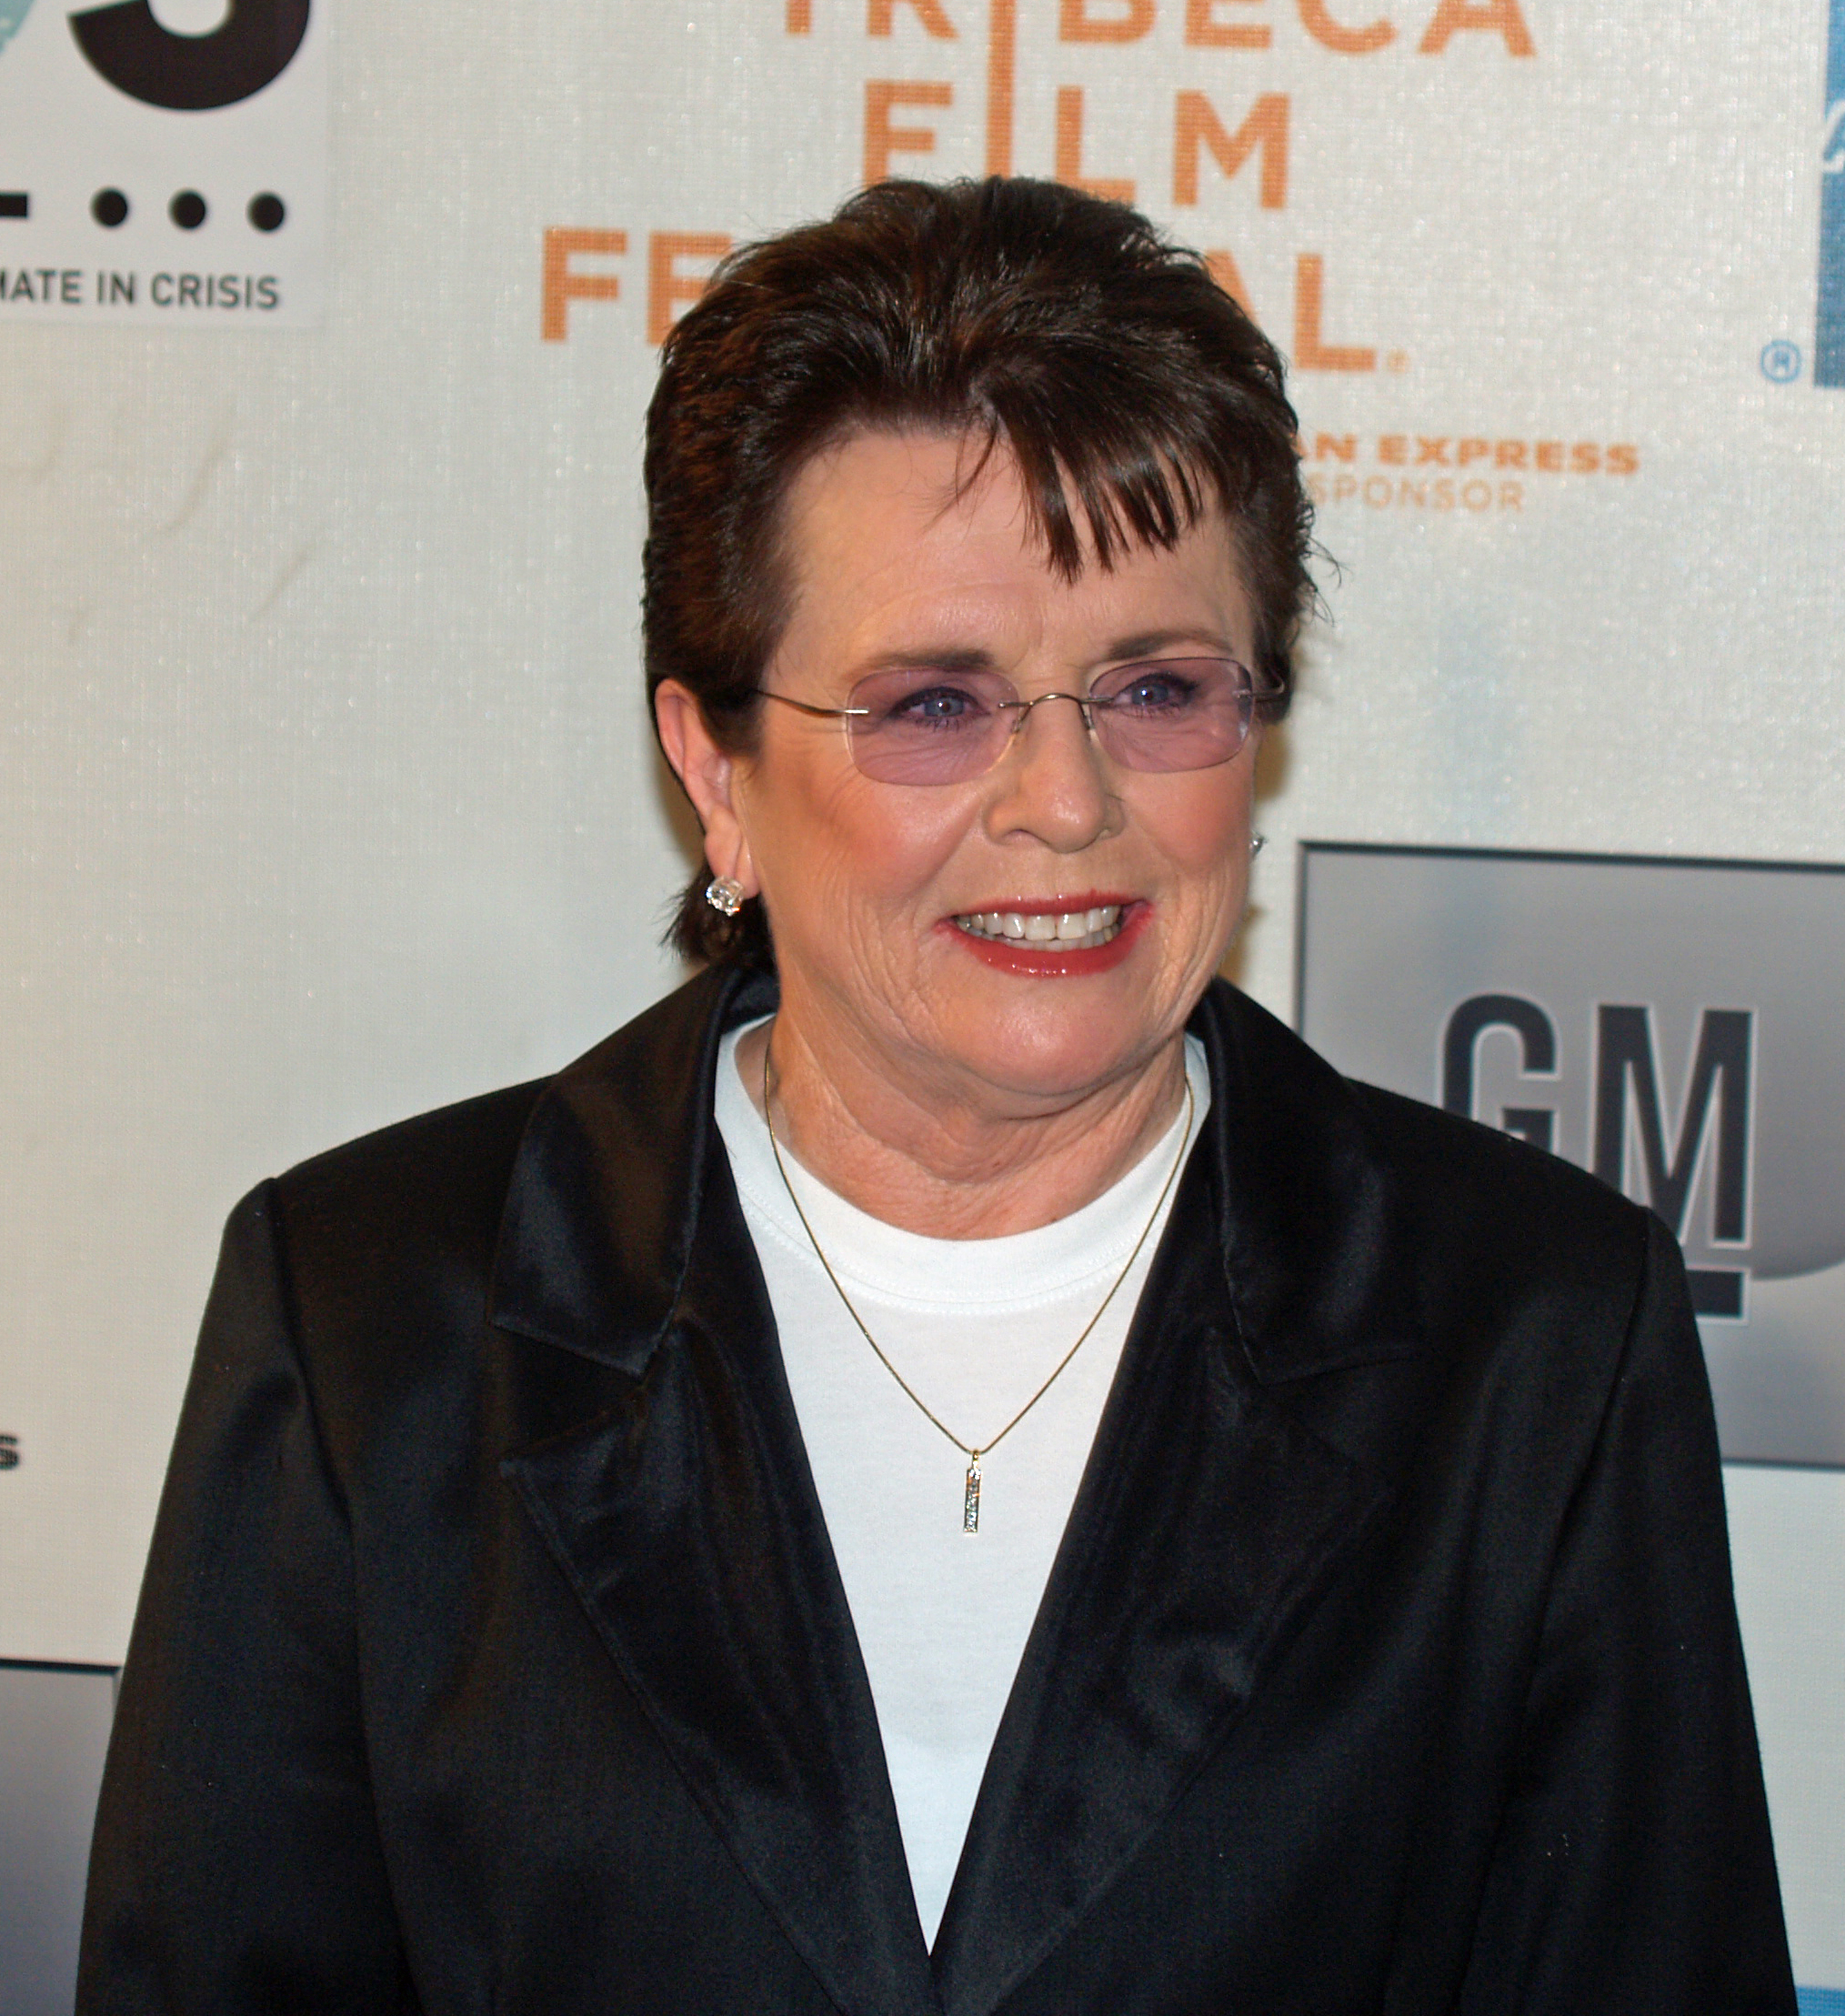 external image Billie_Jean_King_by_David_Shankbone.jpg